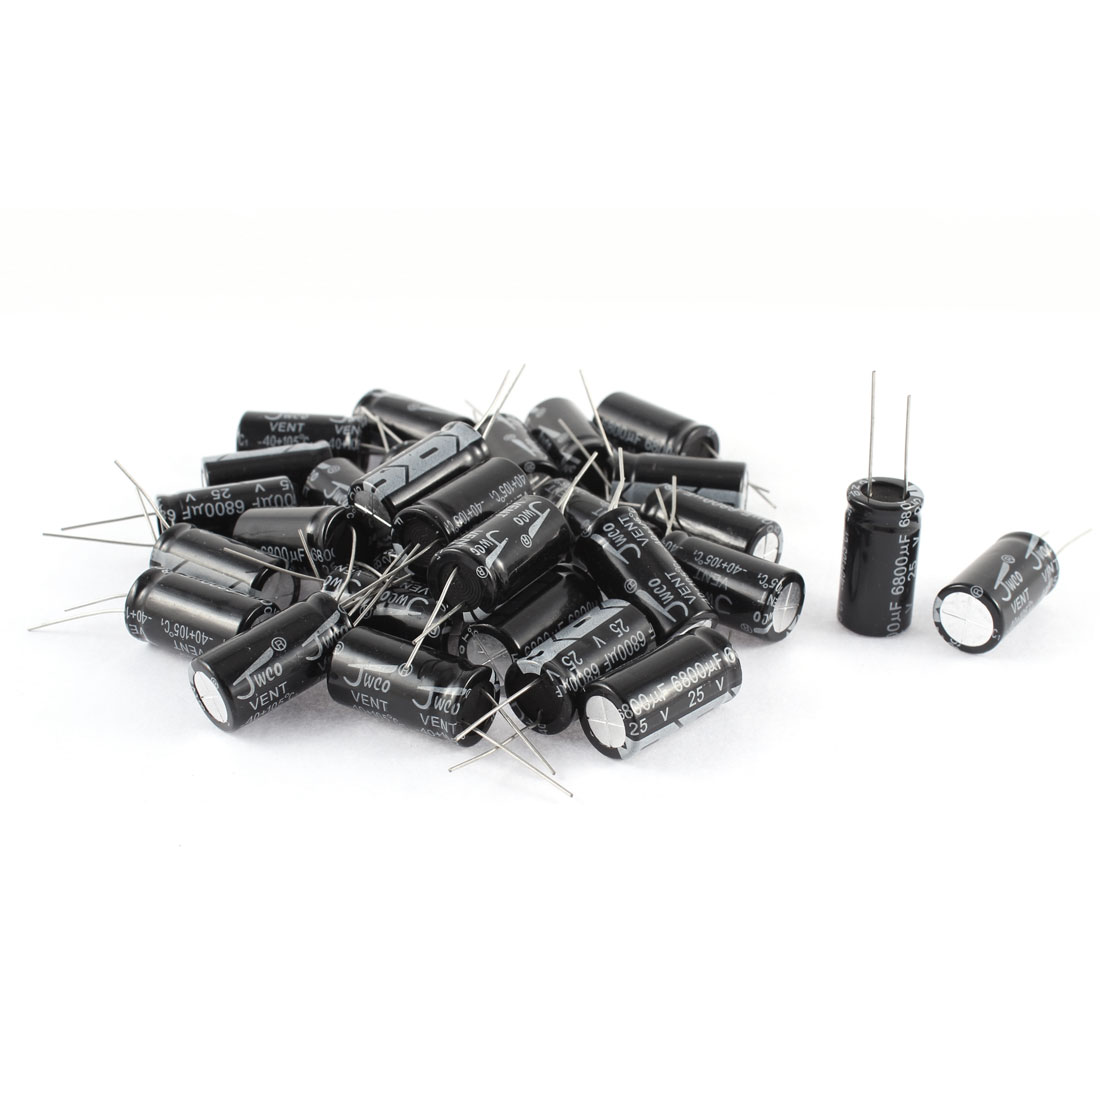 30Pcs 25V 6800UF Radial Leads Through Hole 16mm x 31mm Aluminum Electrolytic Capacitor